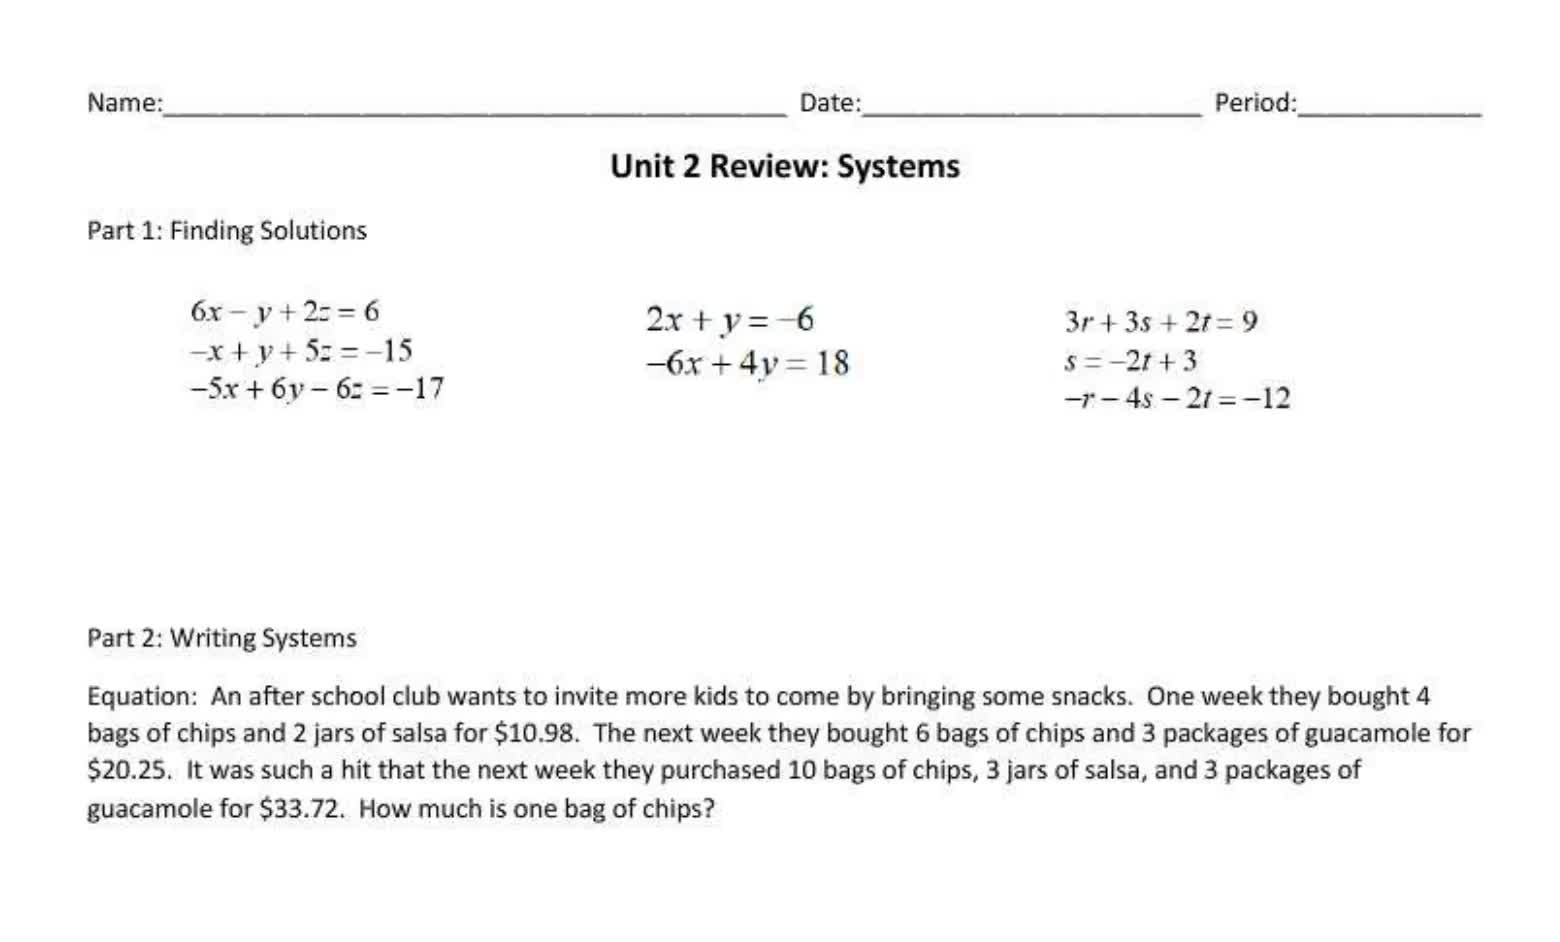 Final Review Unit 2